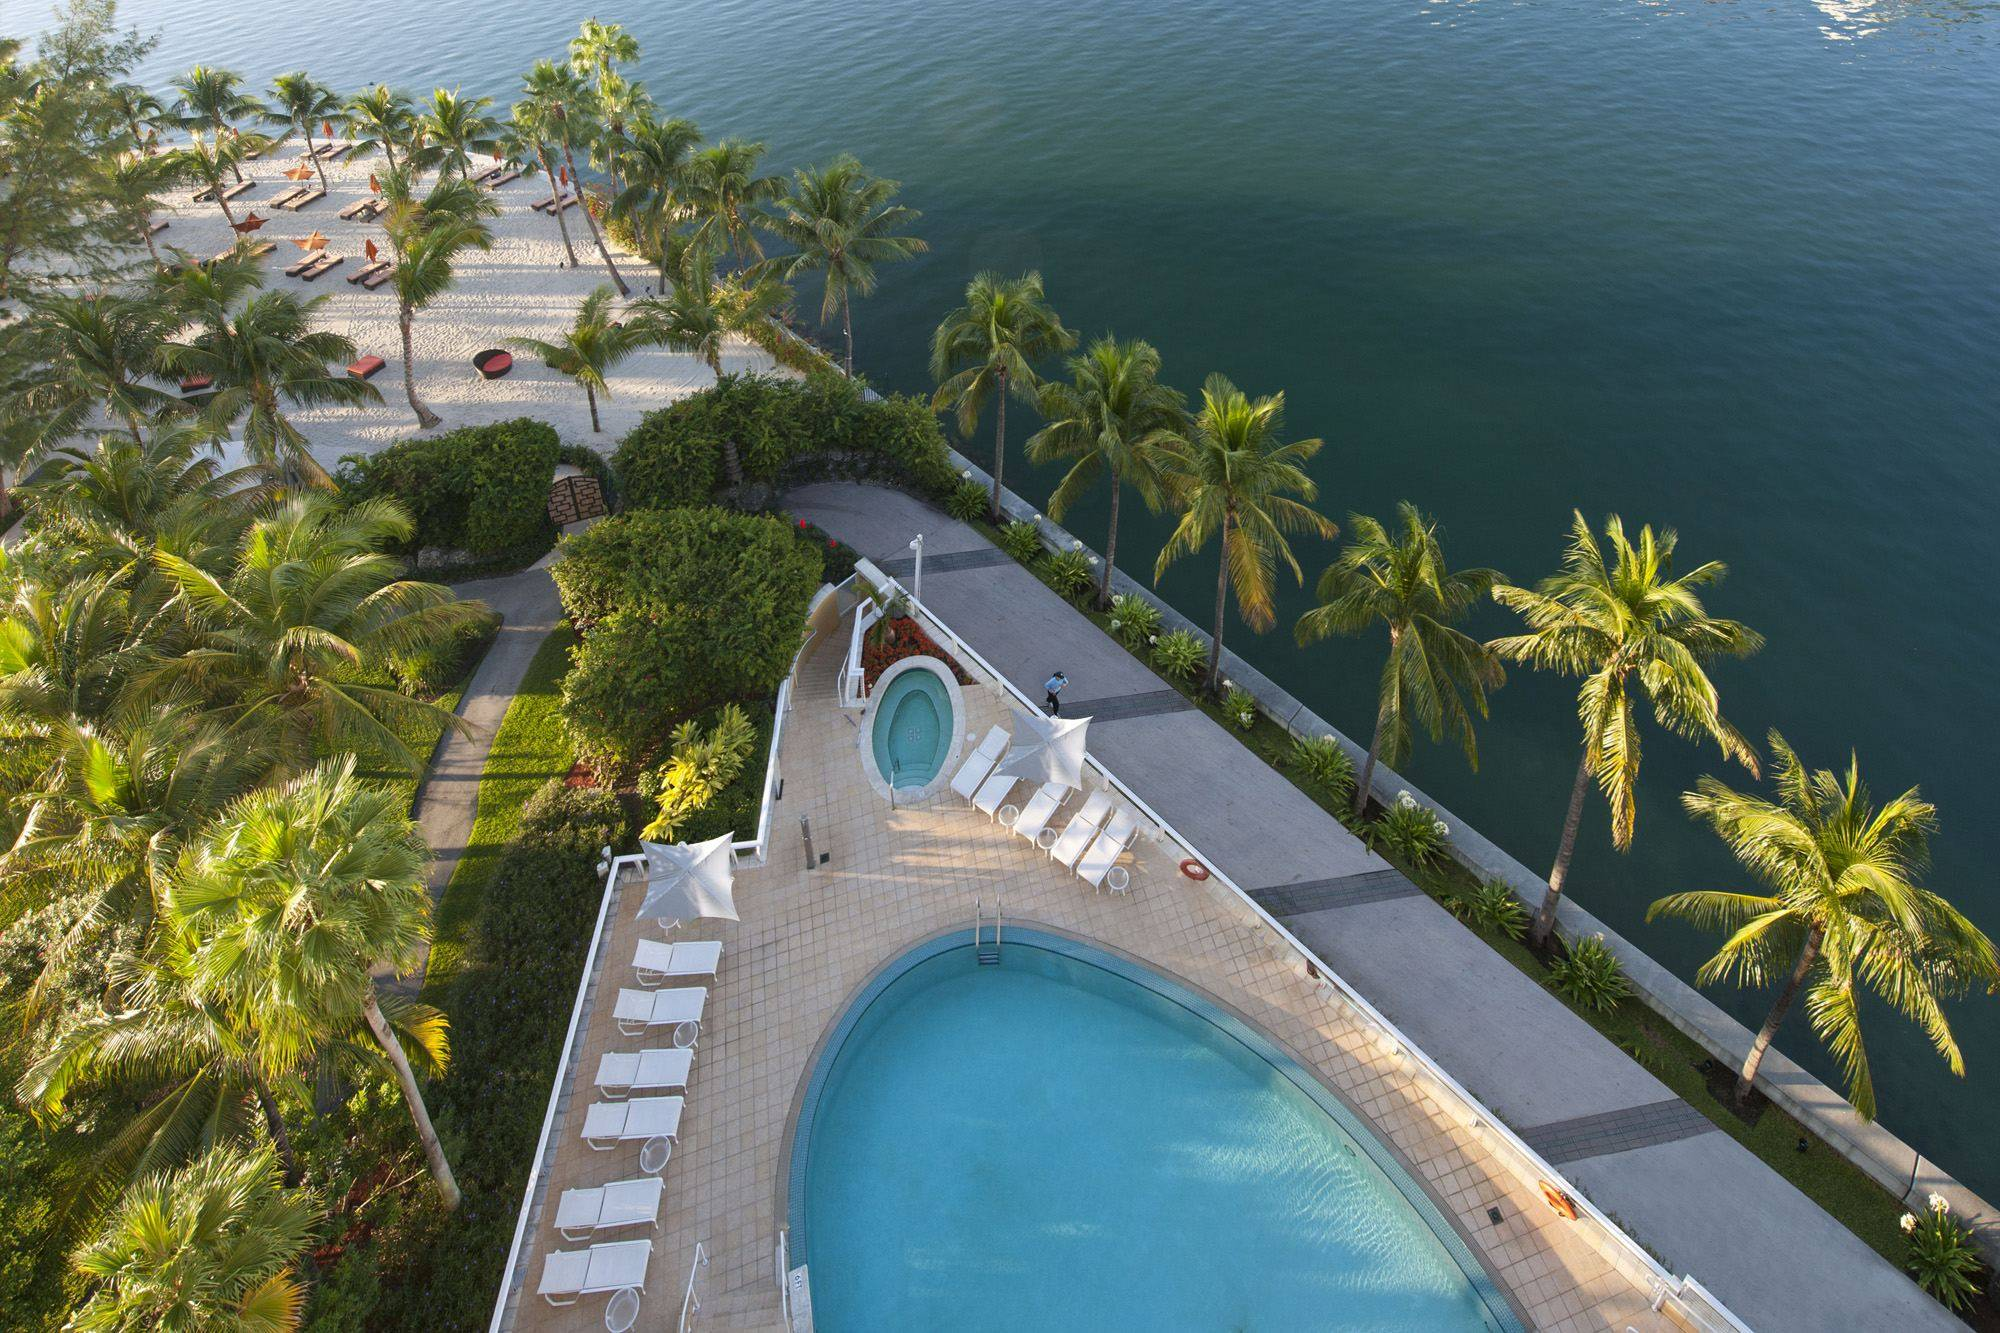 Book Your Next Vacation at Mandarin Oriental Miami and Bring the Whole Family